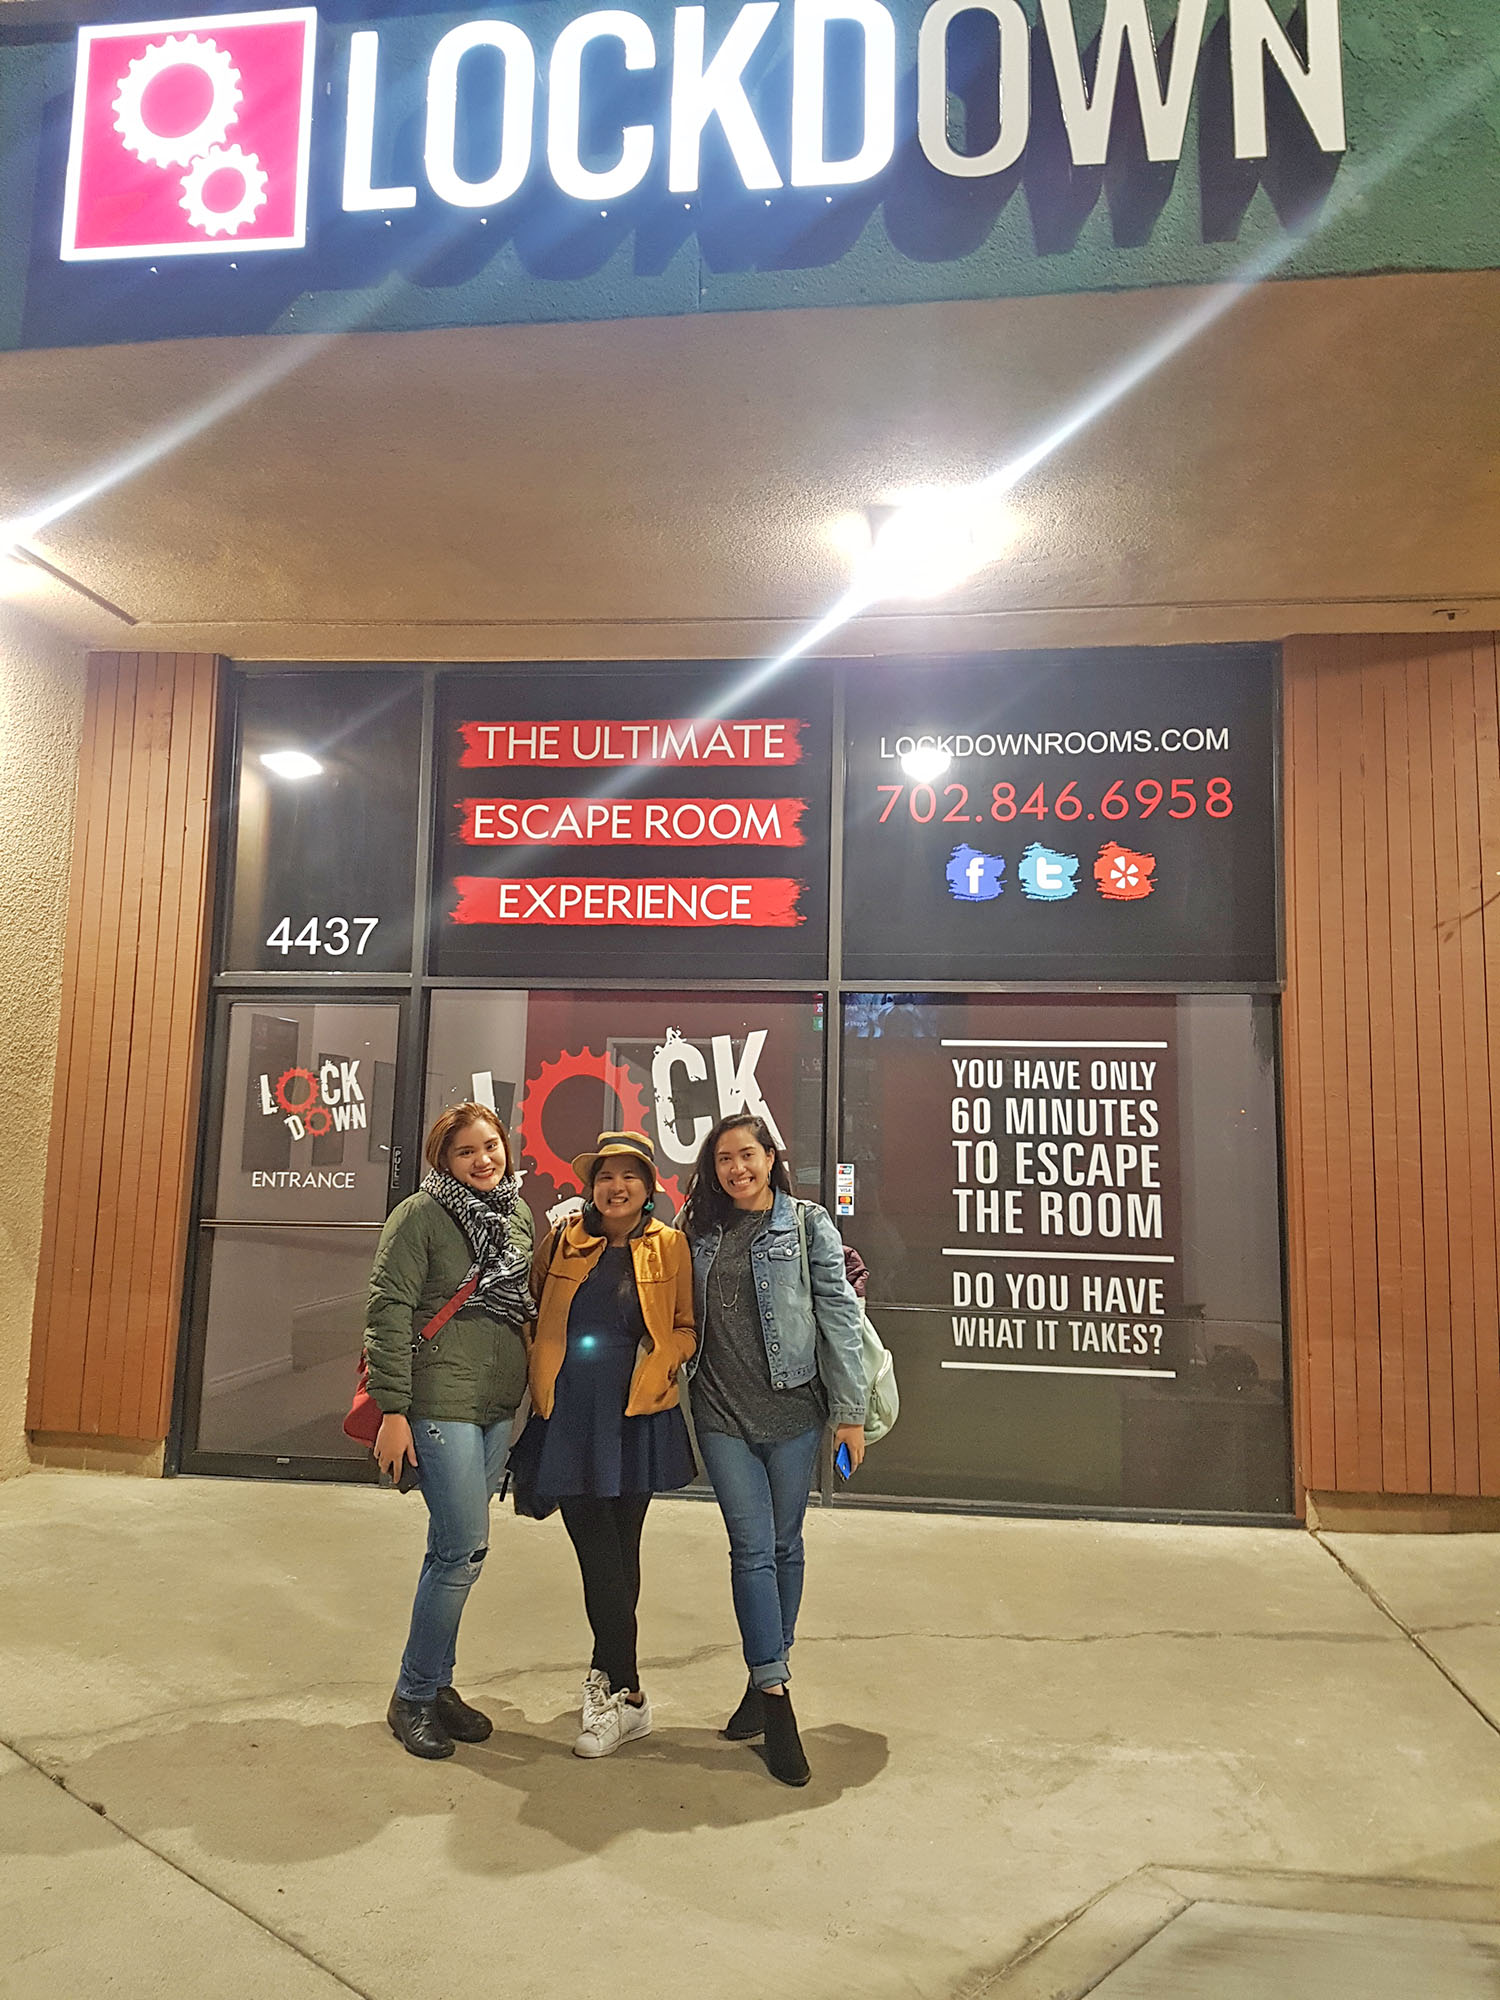 Lockdown Las Vegas Escape Room Review Hungry Travel Duo